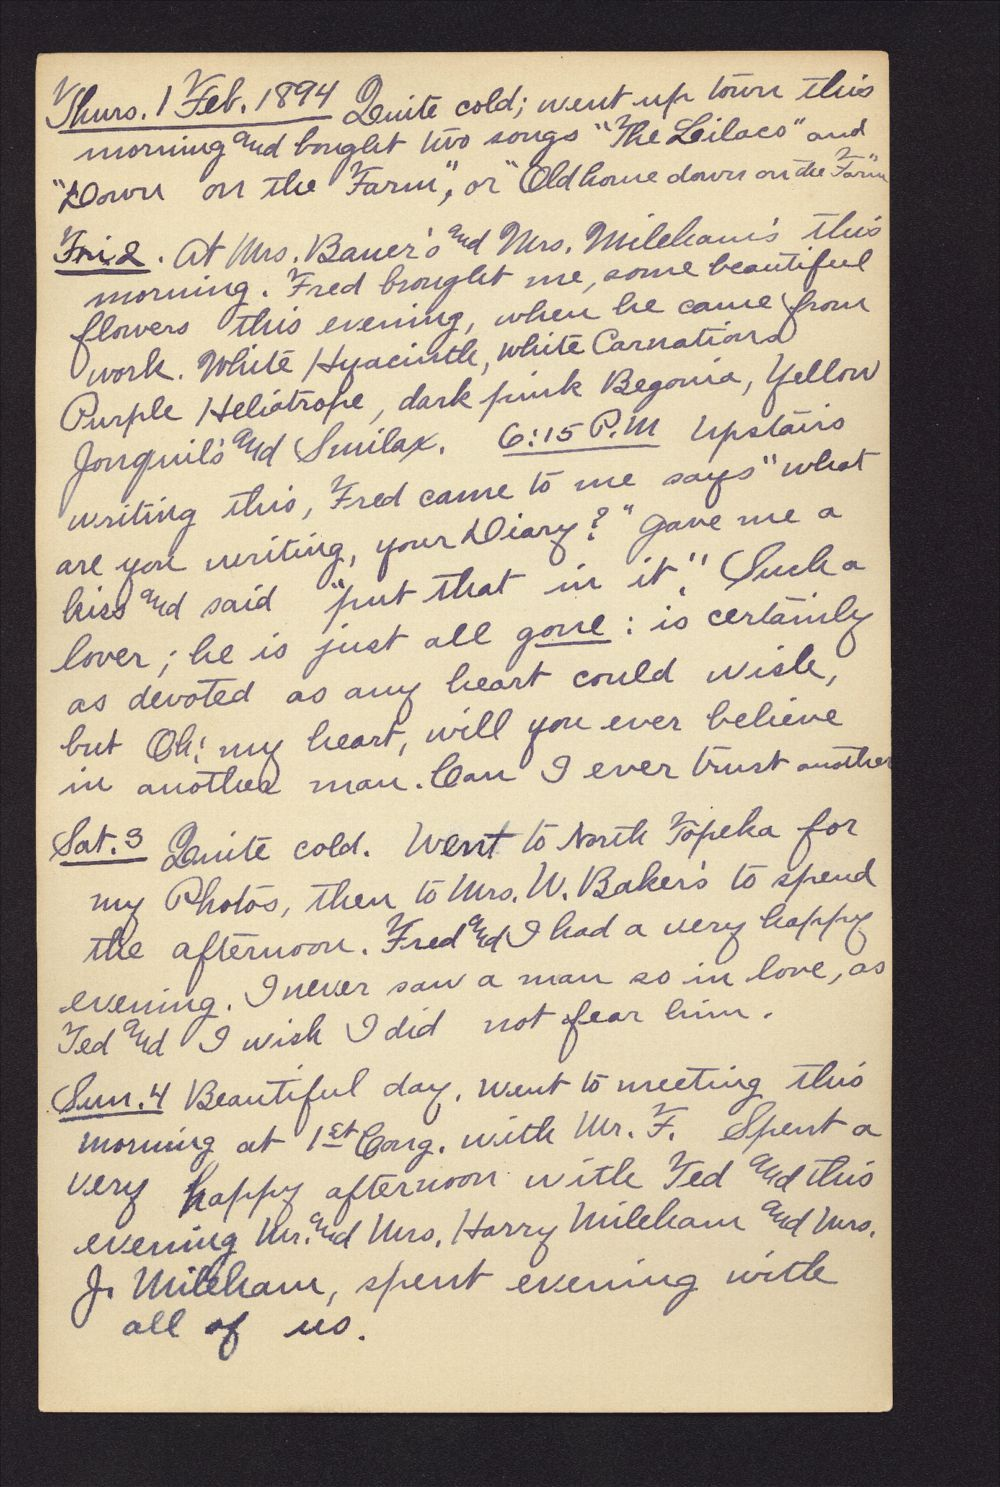 Martha Farnsworth diary - Feb 1, 1894